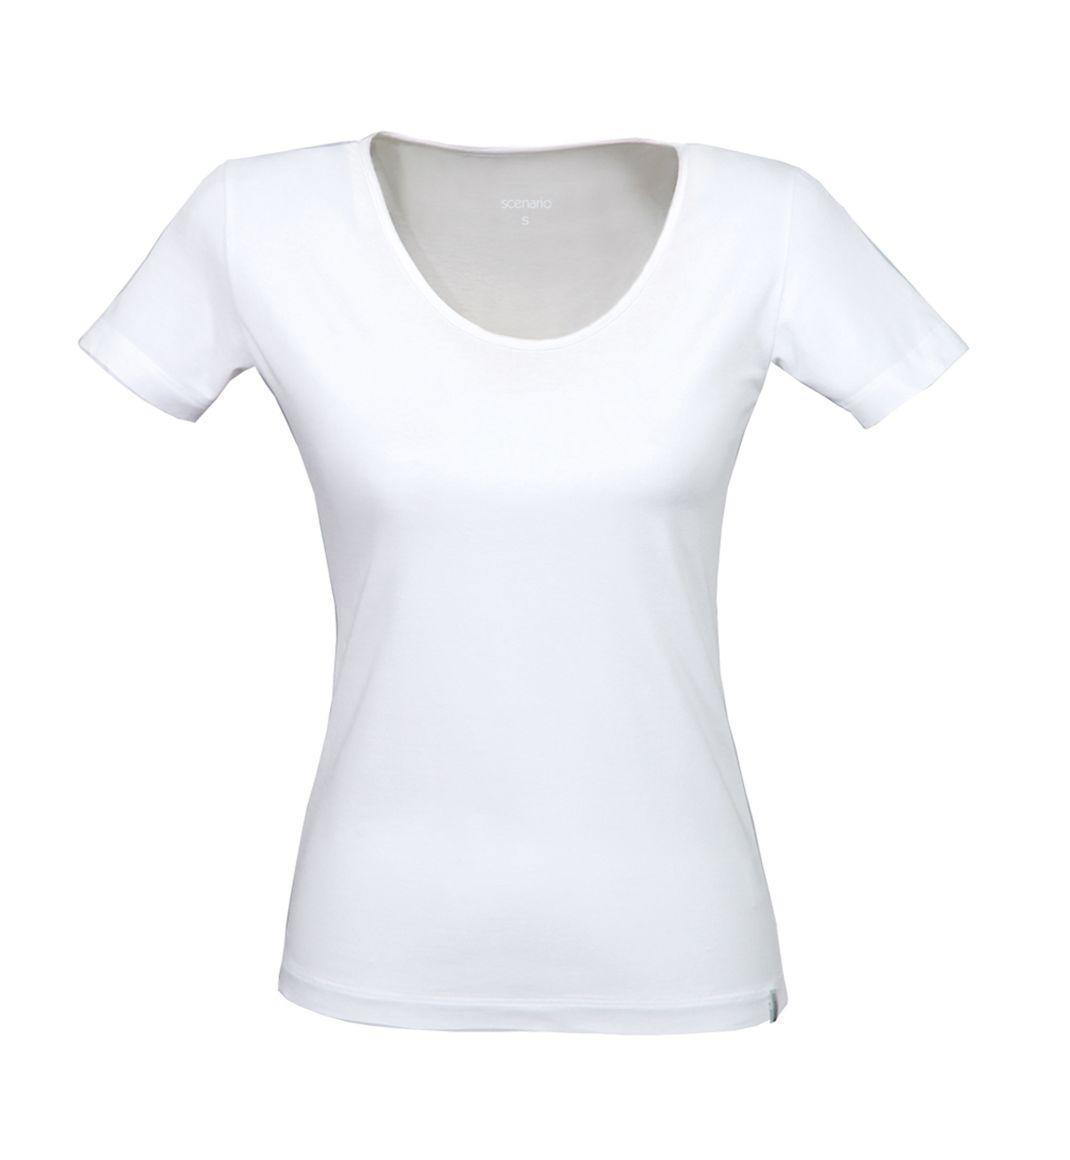 Damen T-Shirt / Bodyshirt